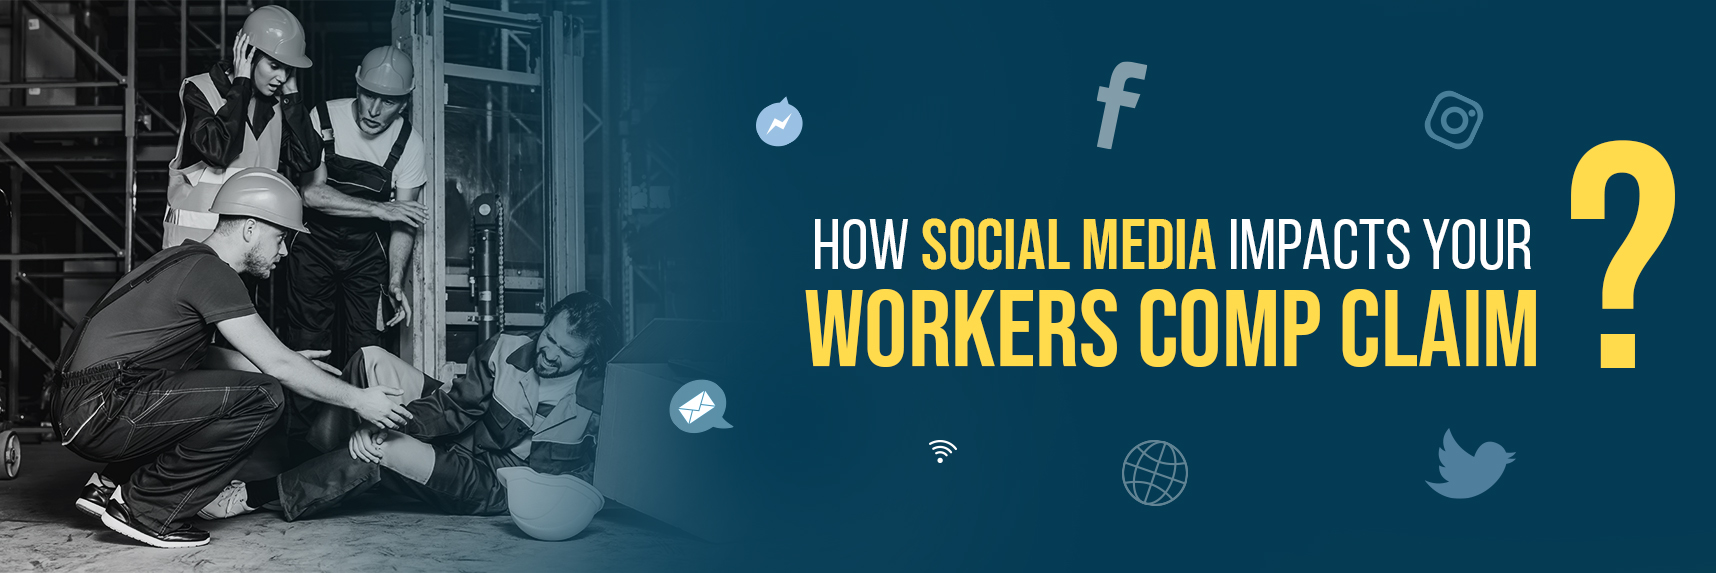 How Social Media impacts your Workers Comp Claim?